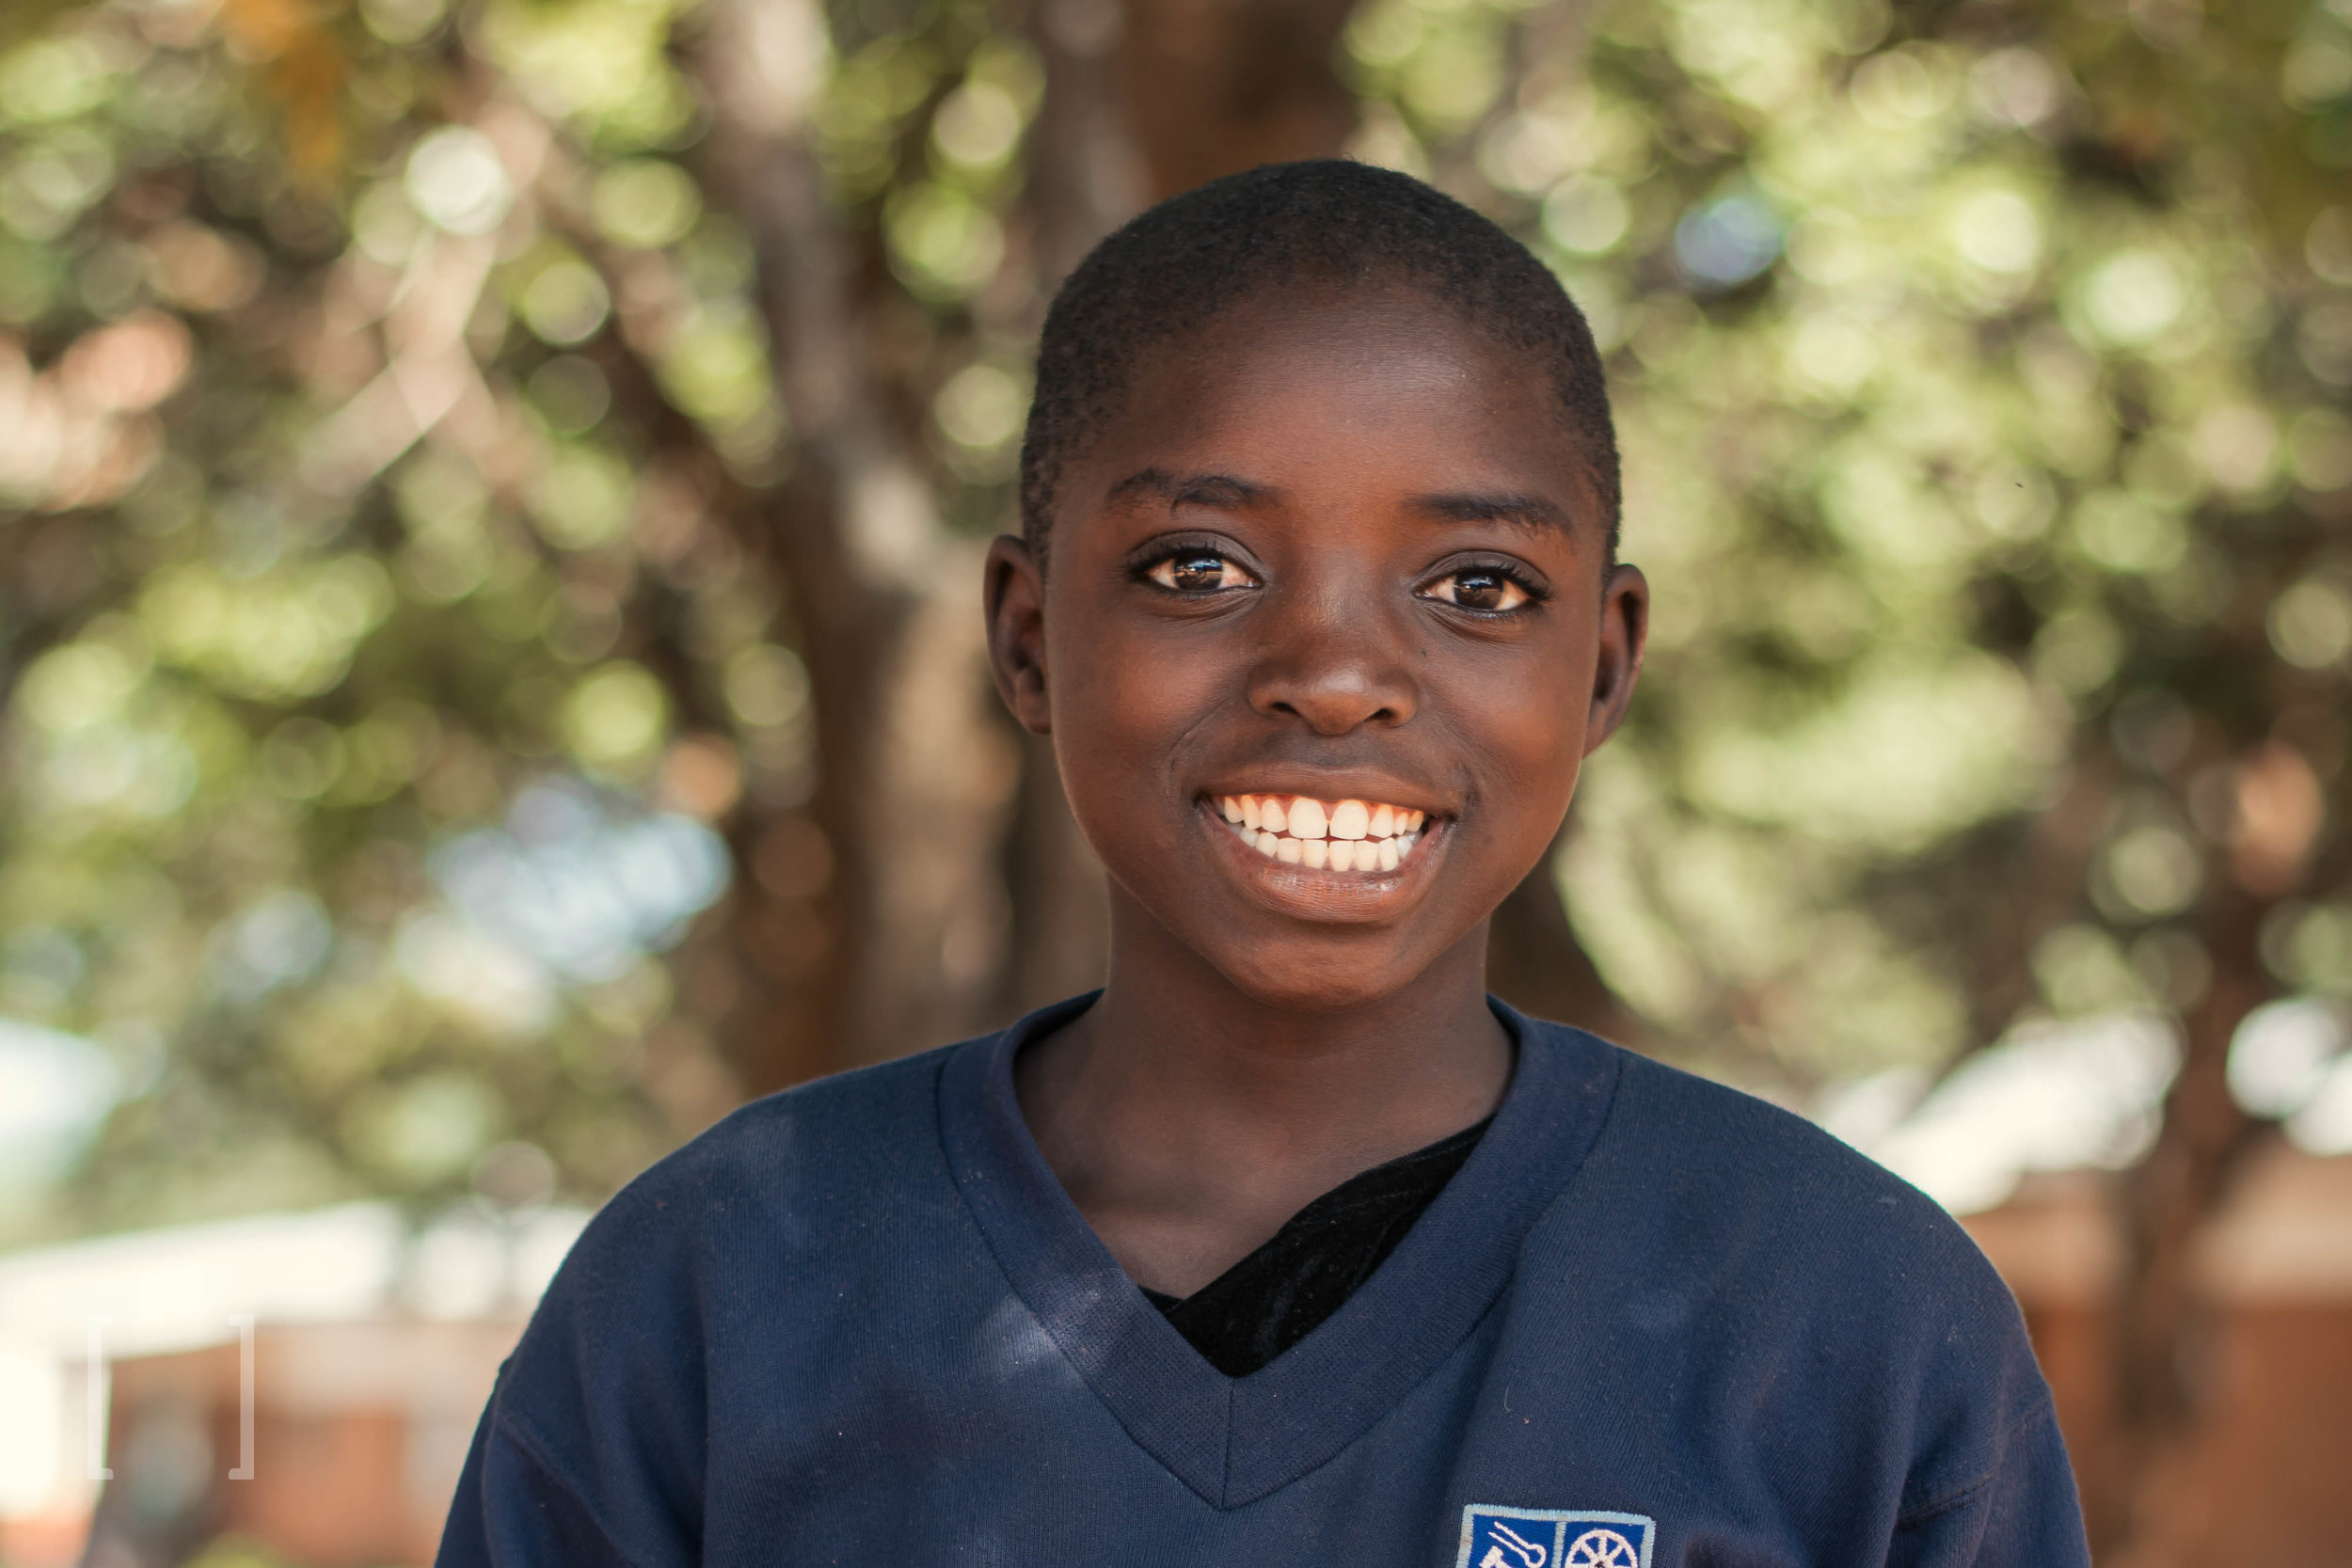 Norah - Norah came to Home of Hope when she was a baby in 2005. She is doing well and likes singing and dancing. Norah would like to be a journalist one day. Be a part of her story!